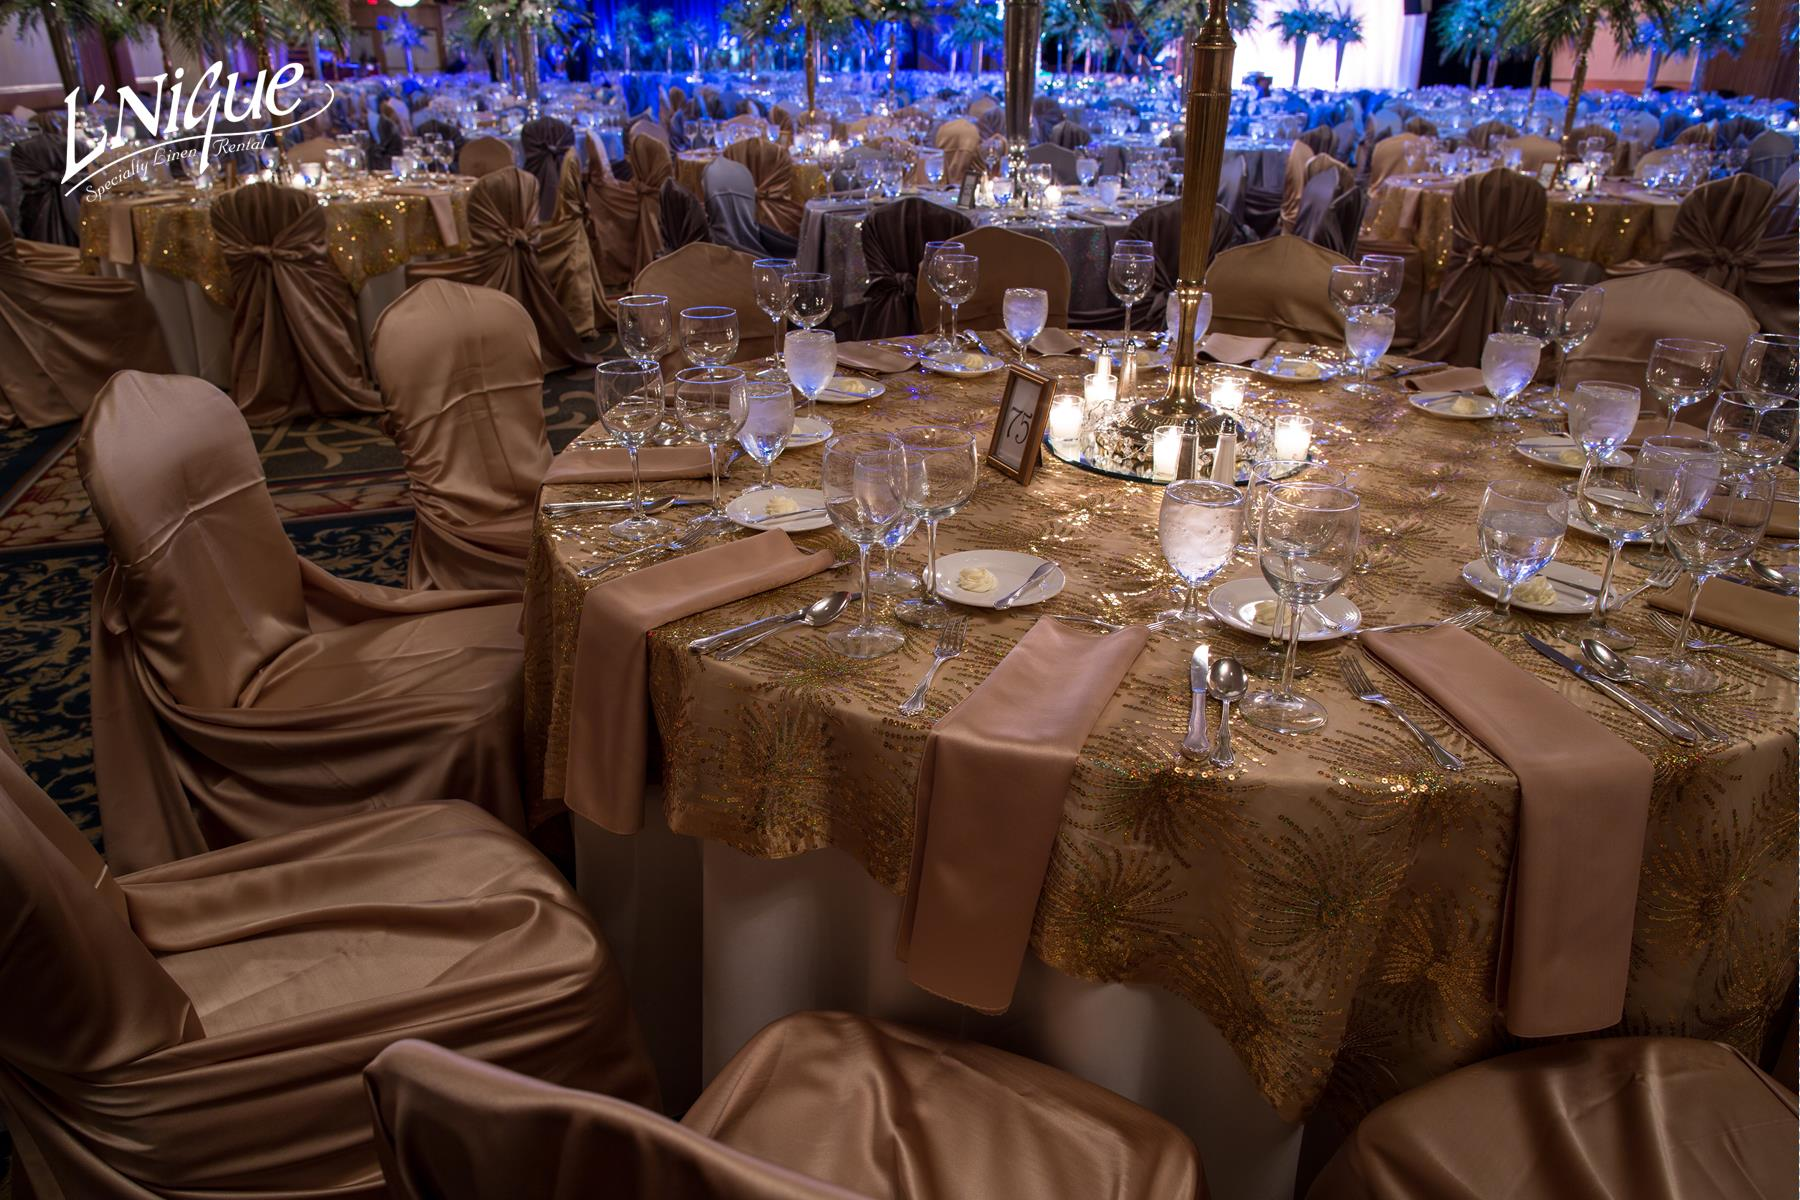 chair covers rental cleveland ohio ikea henriksdal uk satin gold napkin specialty linen